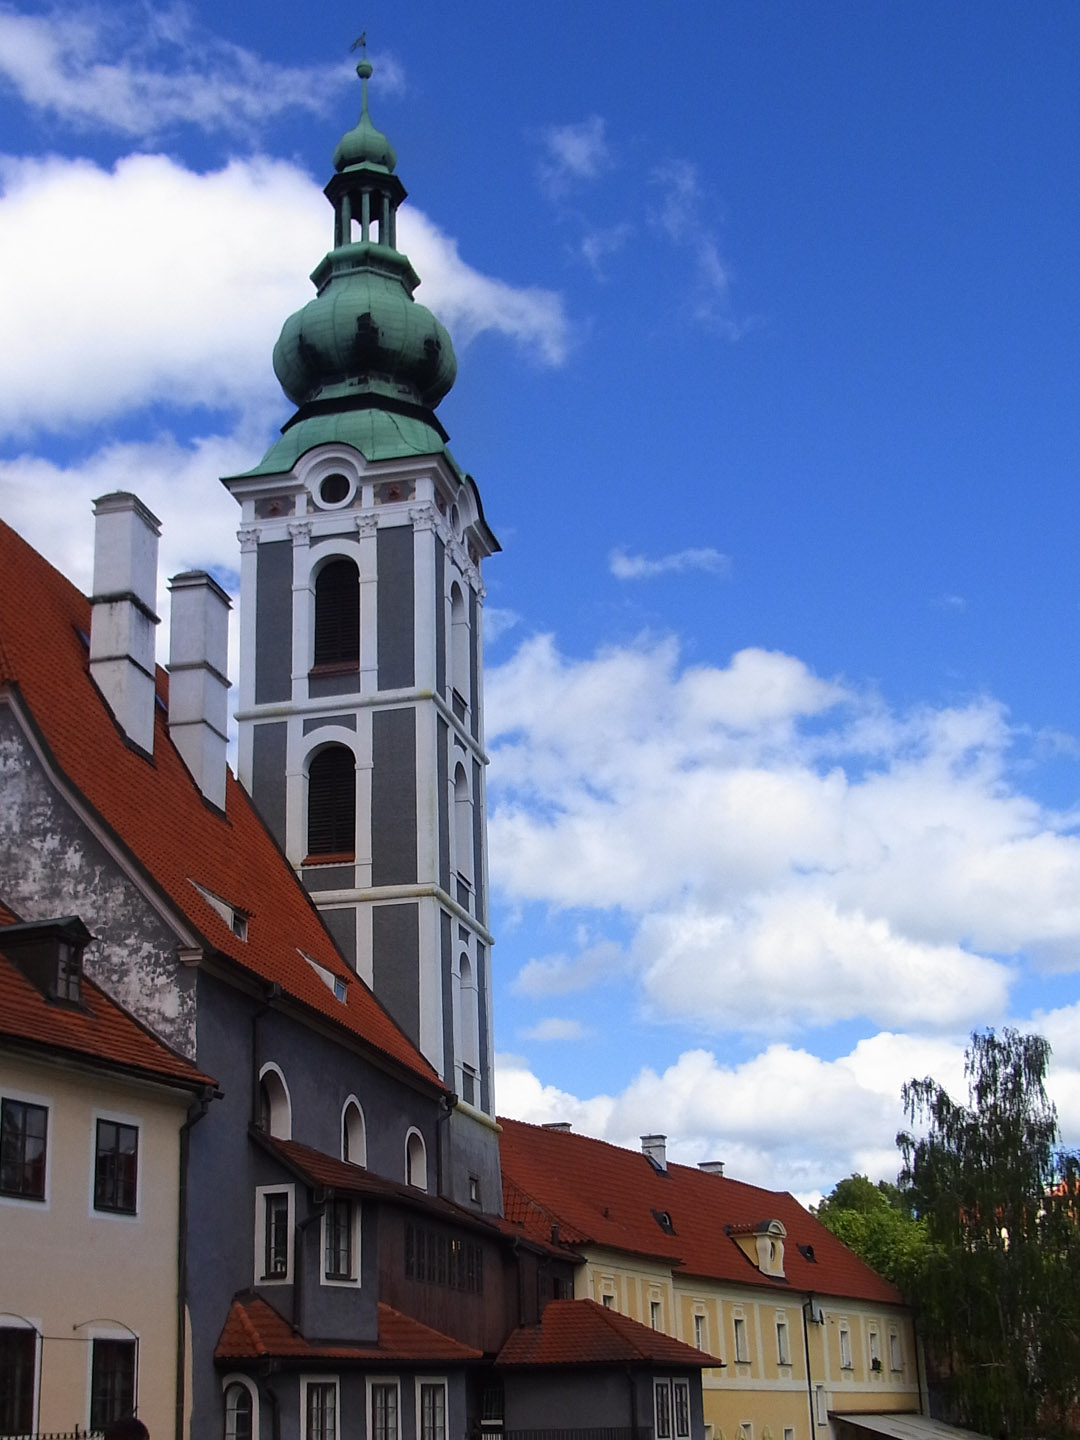 Tower of St. Jošt Church in Český Krumlov